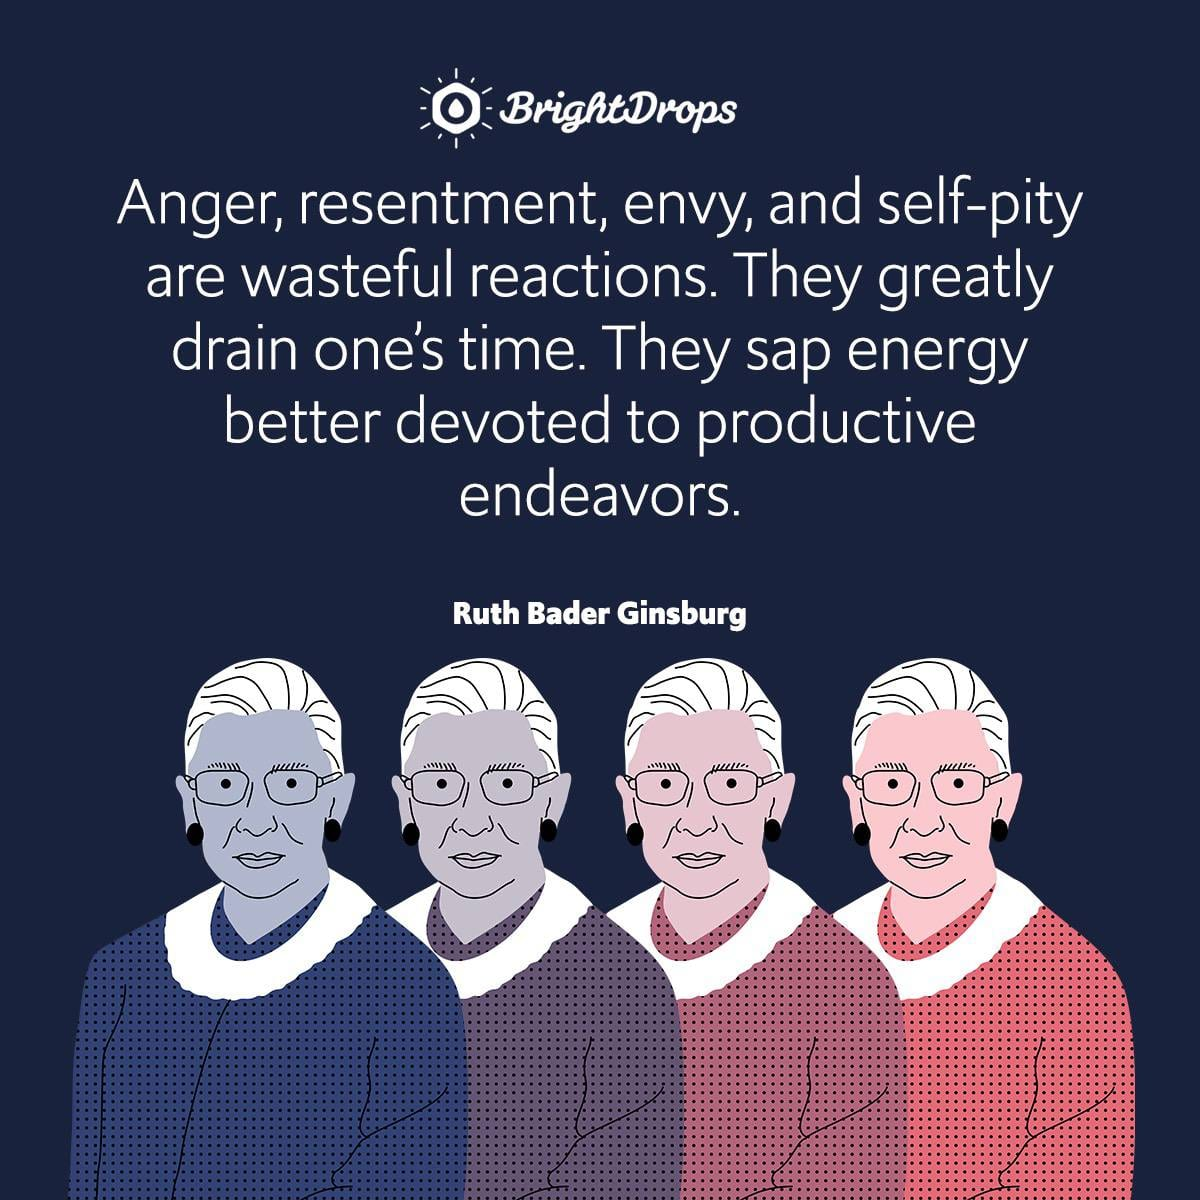 Anger, resentment, envy, and self-pity are wasteful reactions. They greatly drain one's time. They sap energy better devoted to productive endeavors.